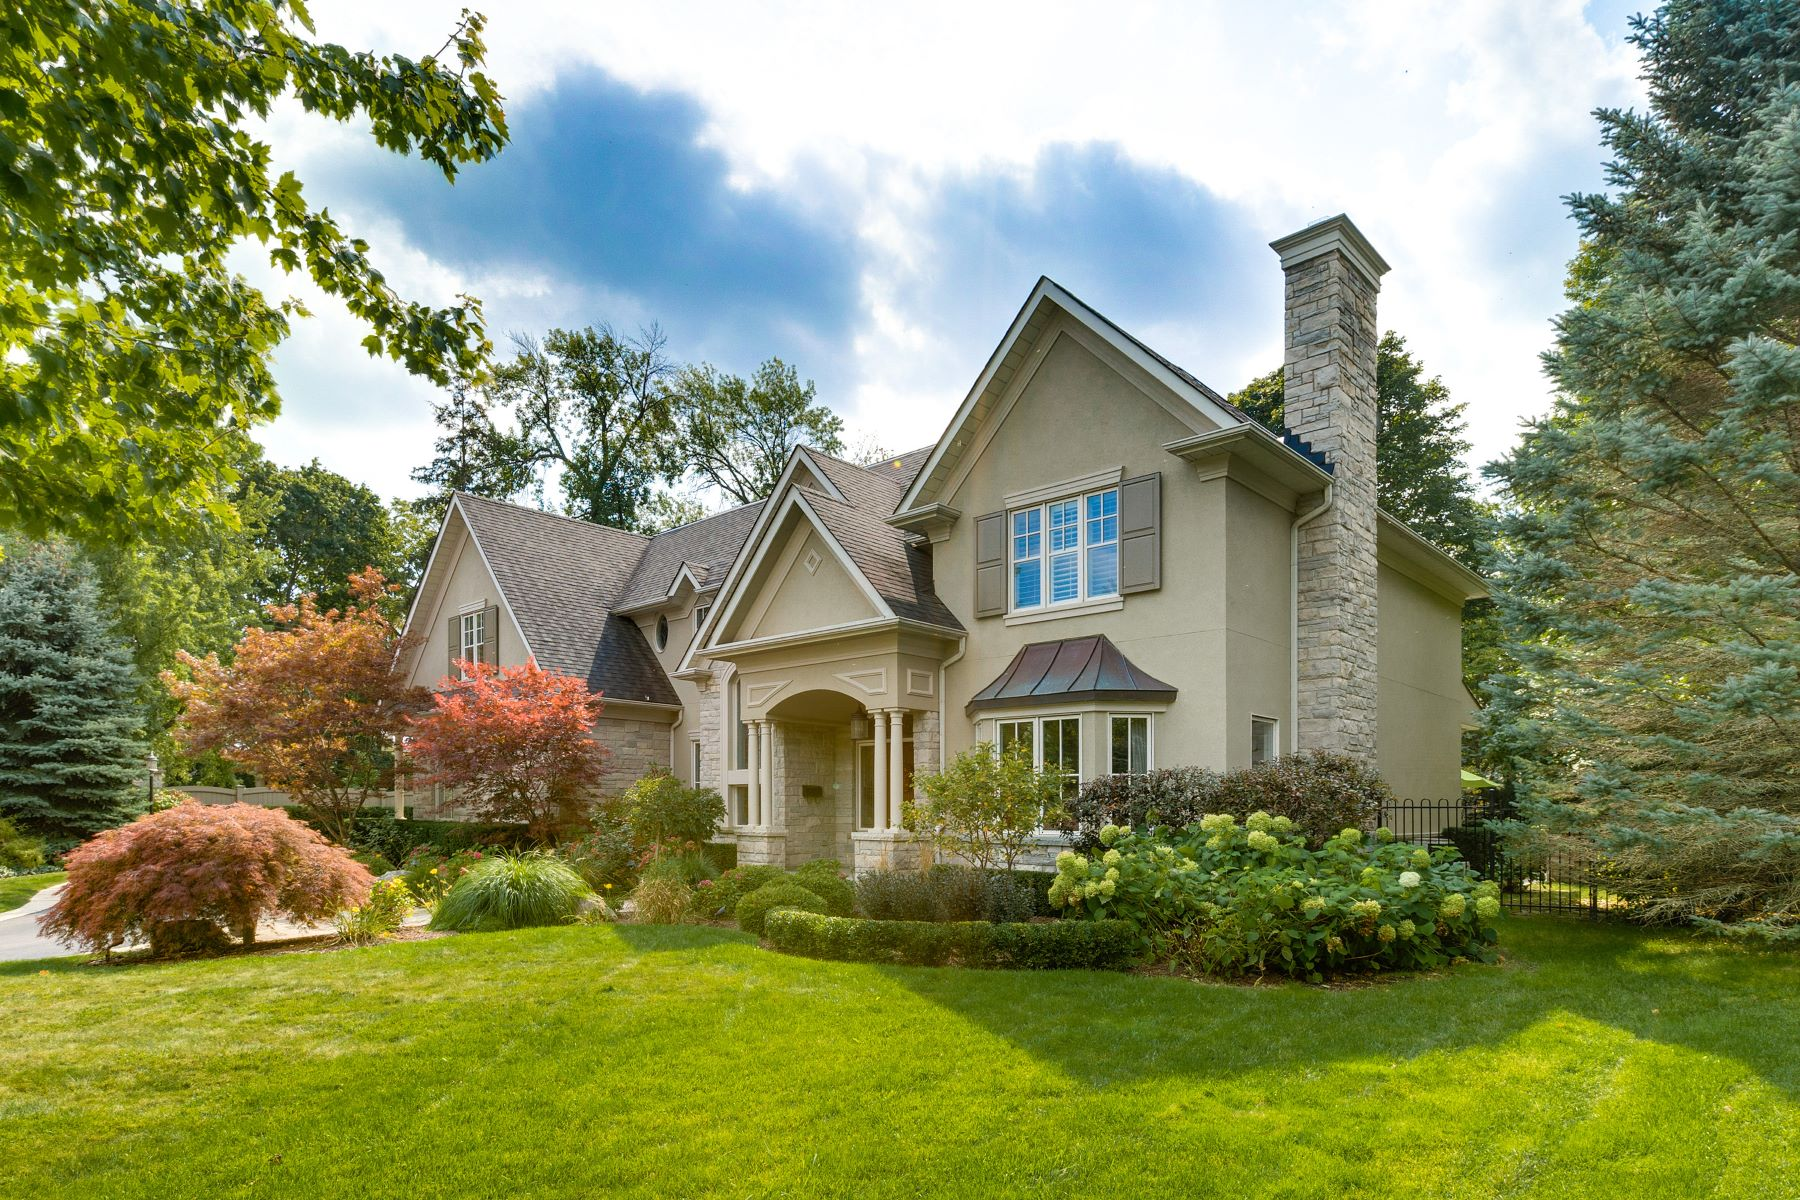 Single Family Home for Sale at Luxury Home on Private Court 108 Parkwood Court, Oakville, Ontario, L6J7W6 Canada